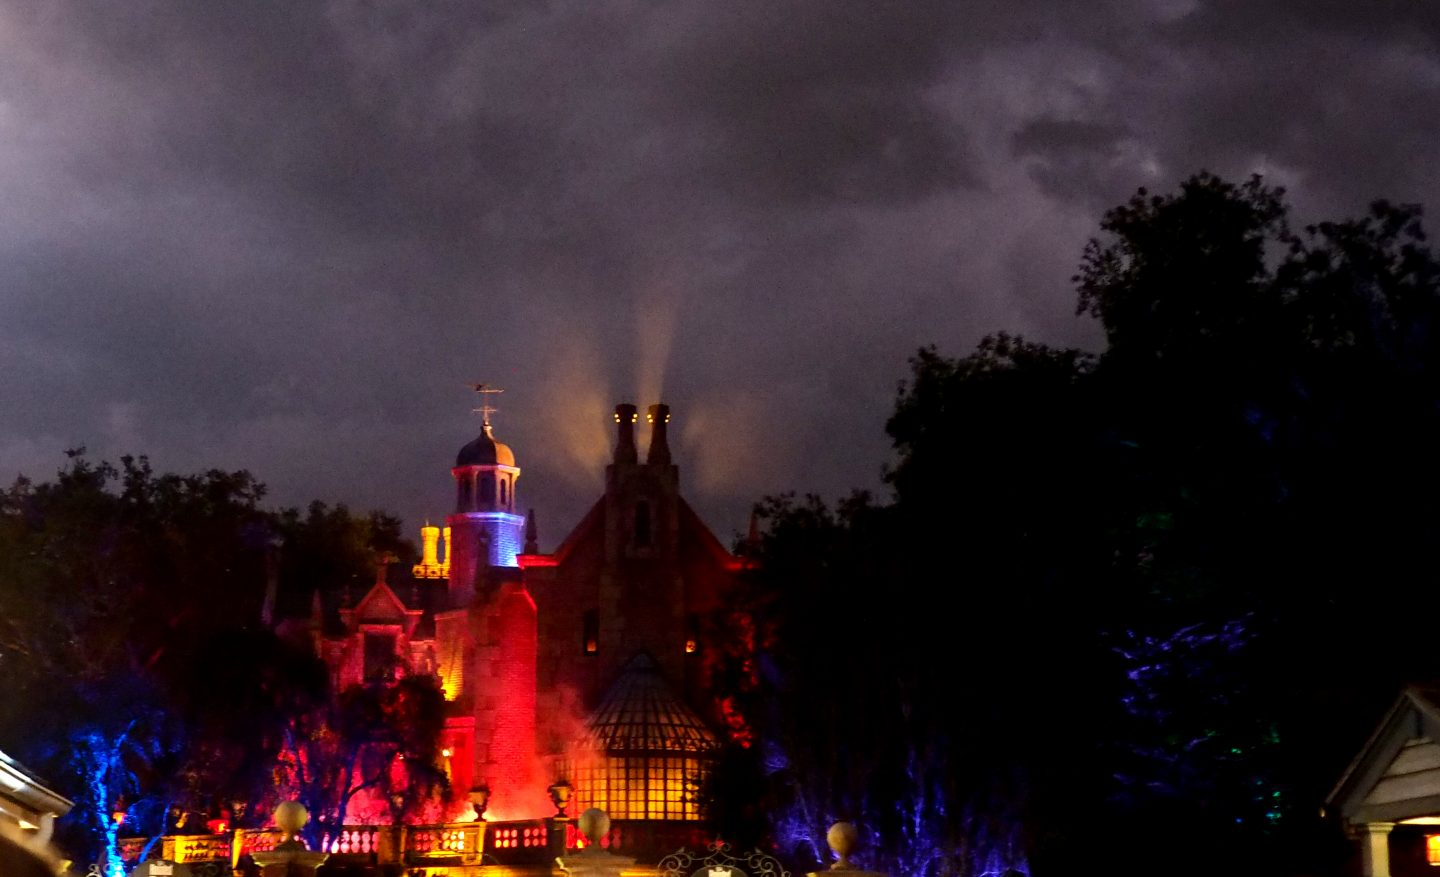 Haunted mansion at mickey's not so scary halloween party